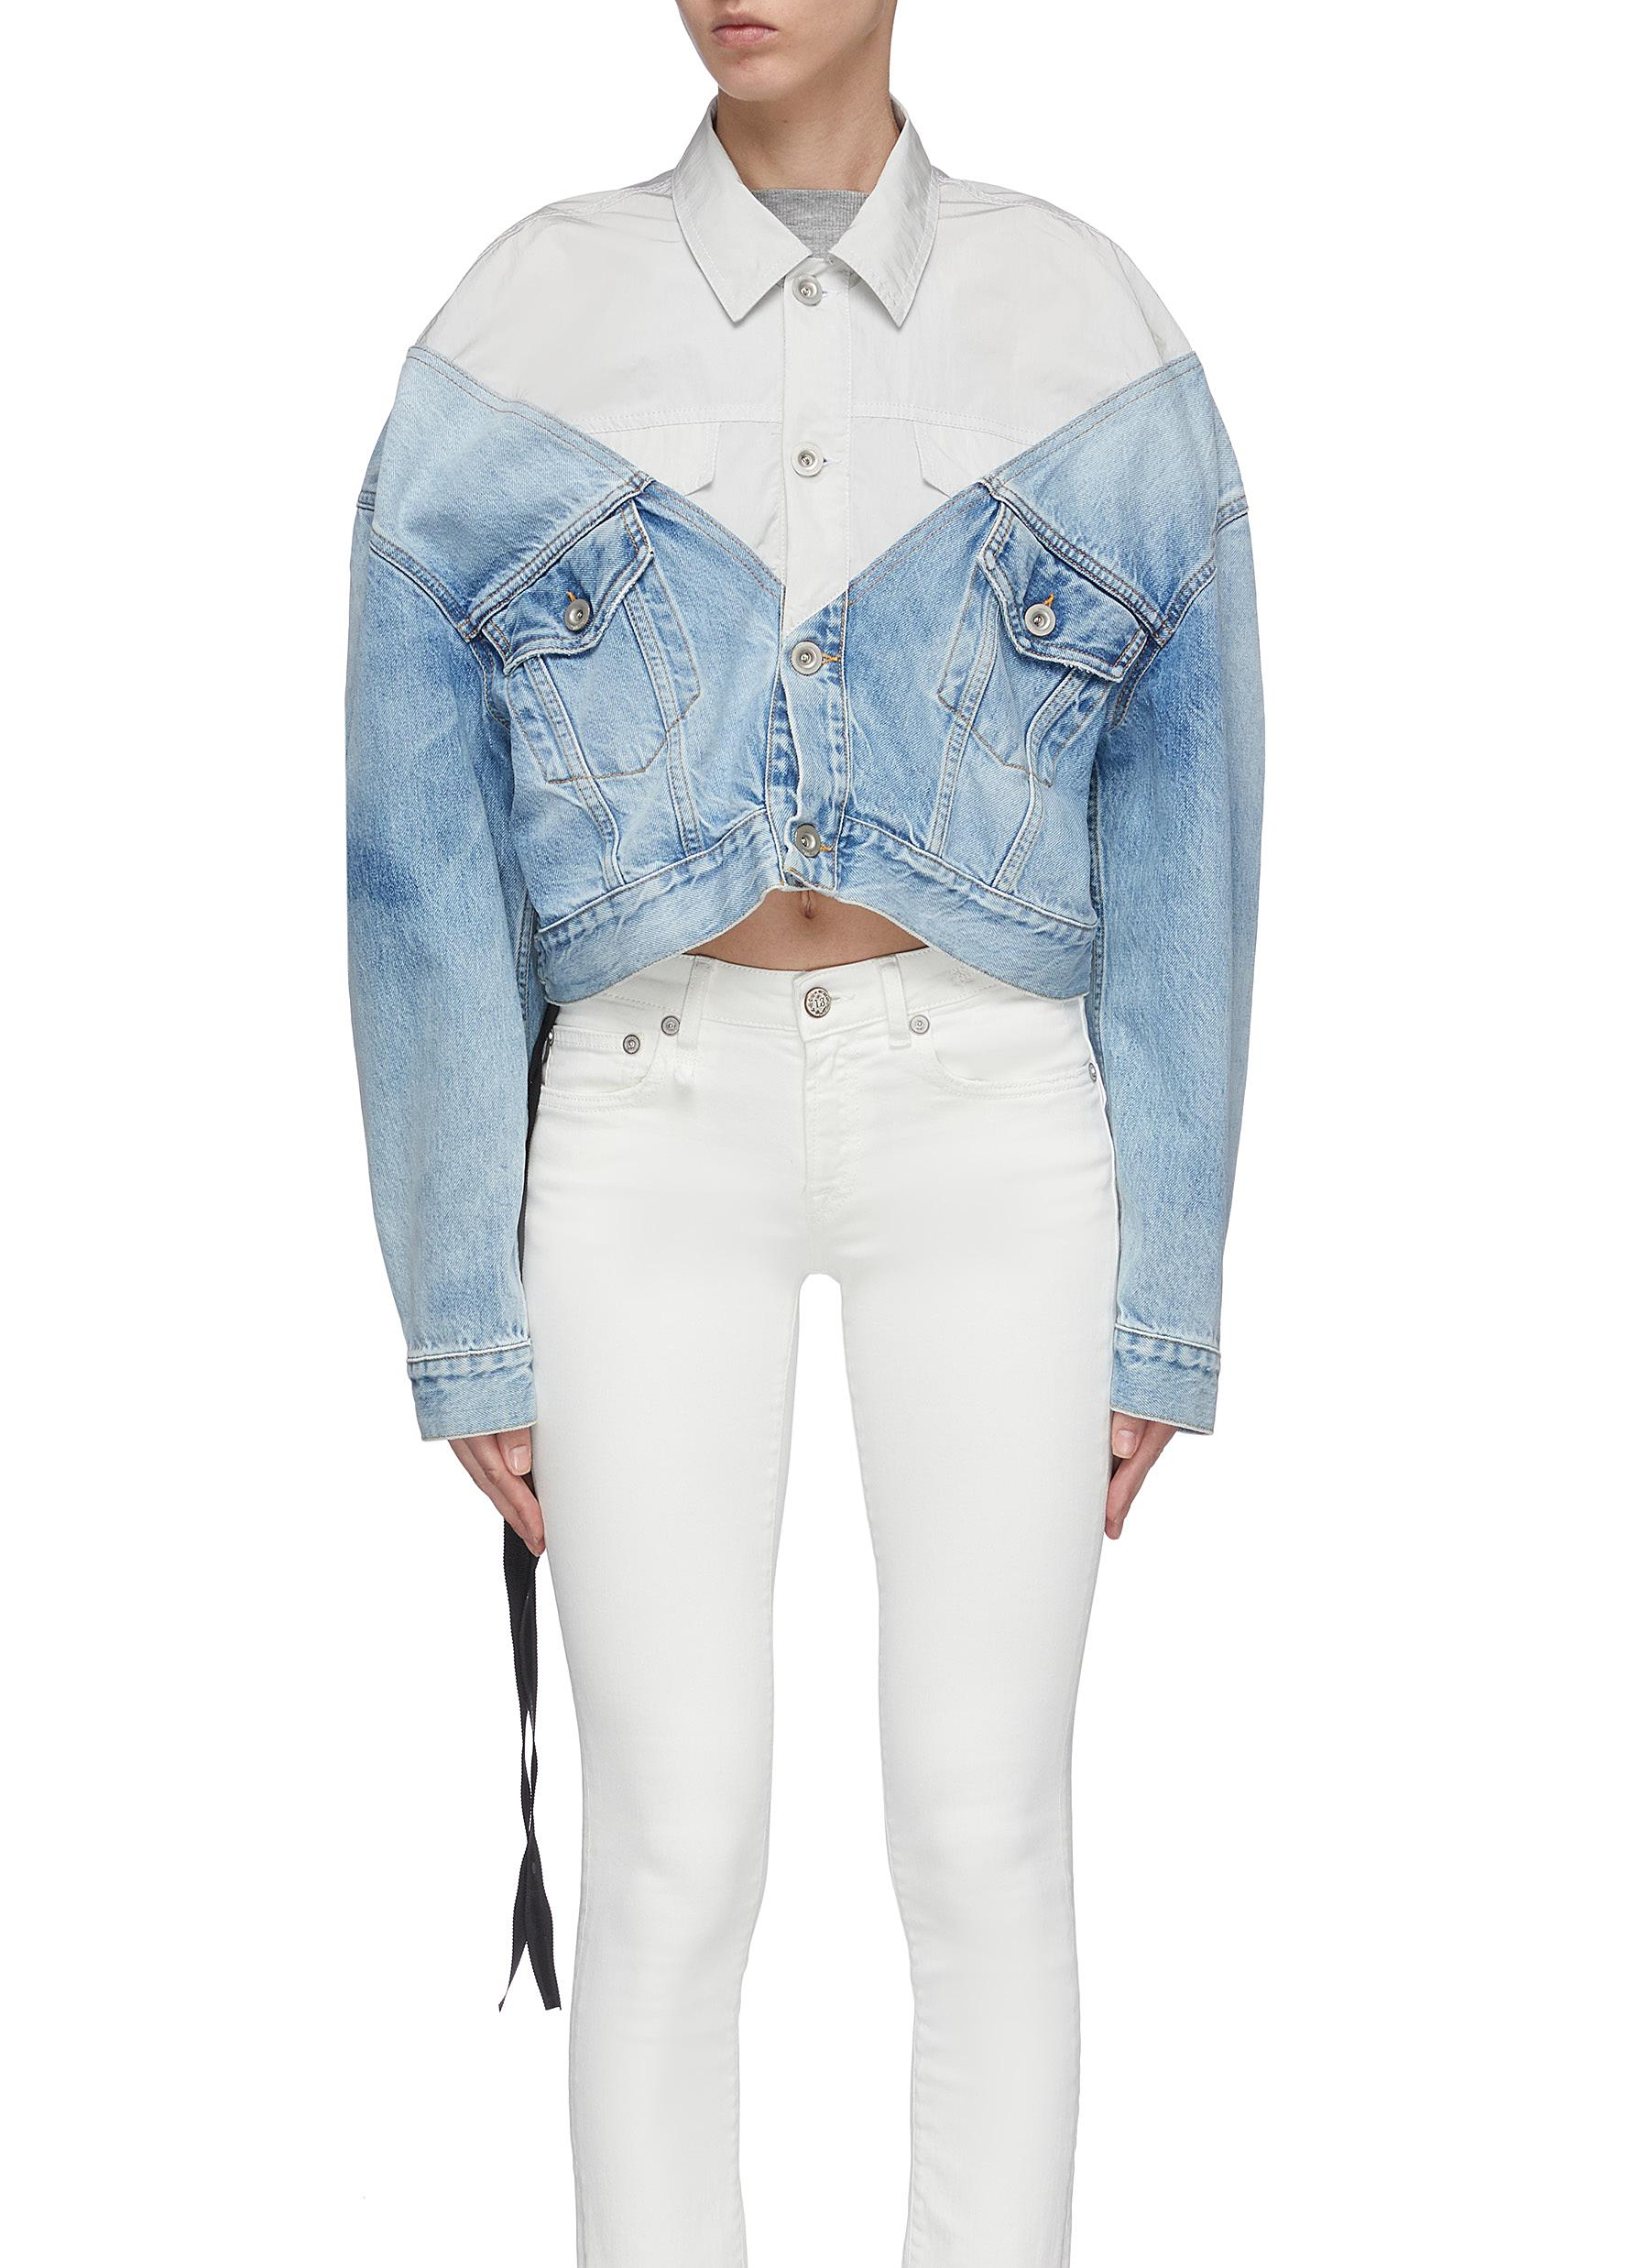 Colourblock patchwork oversized cropped denim jacket by Ben Taverniti Unravel Project